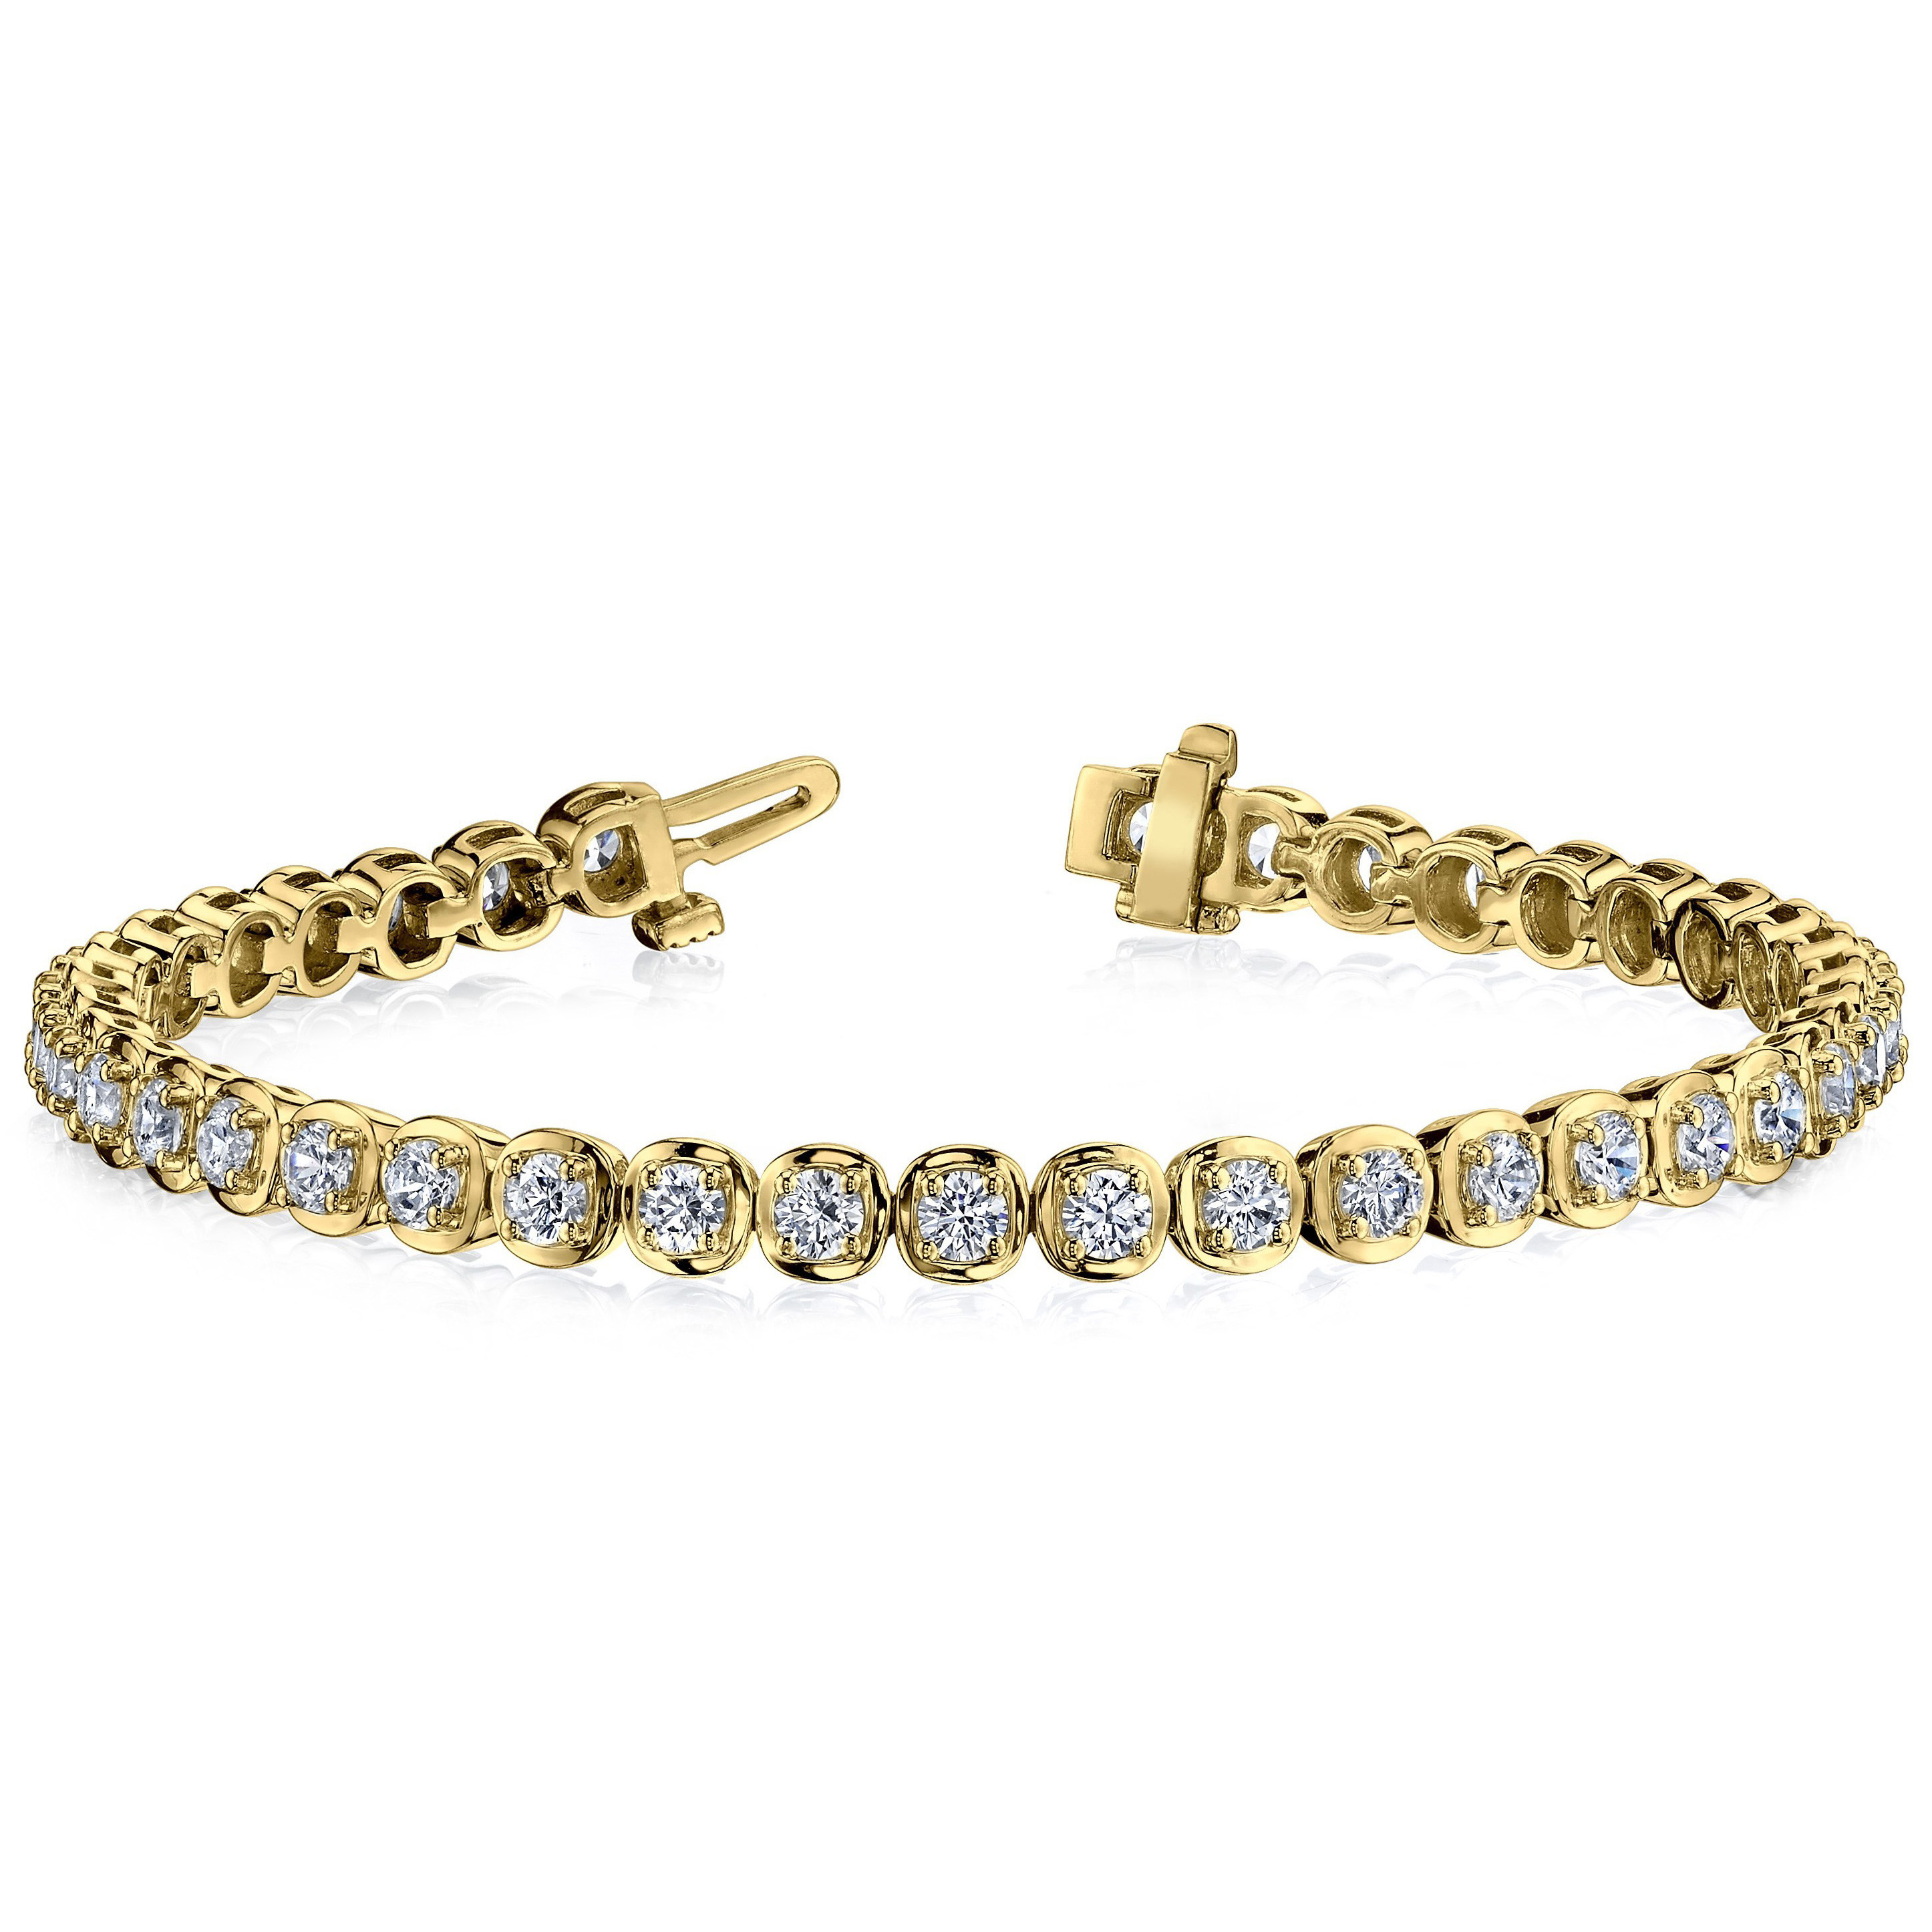 Diamond bracelet 3.00 Carat Diamonds 14K or 18K Gold